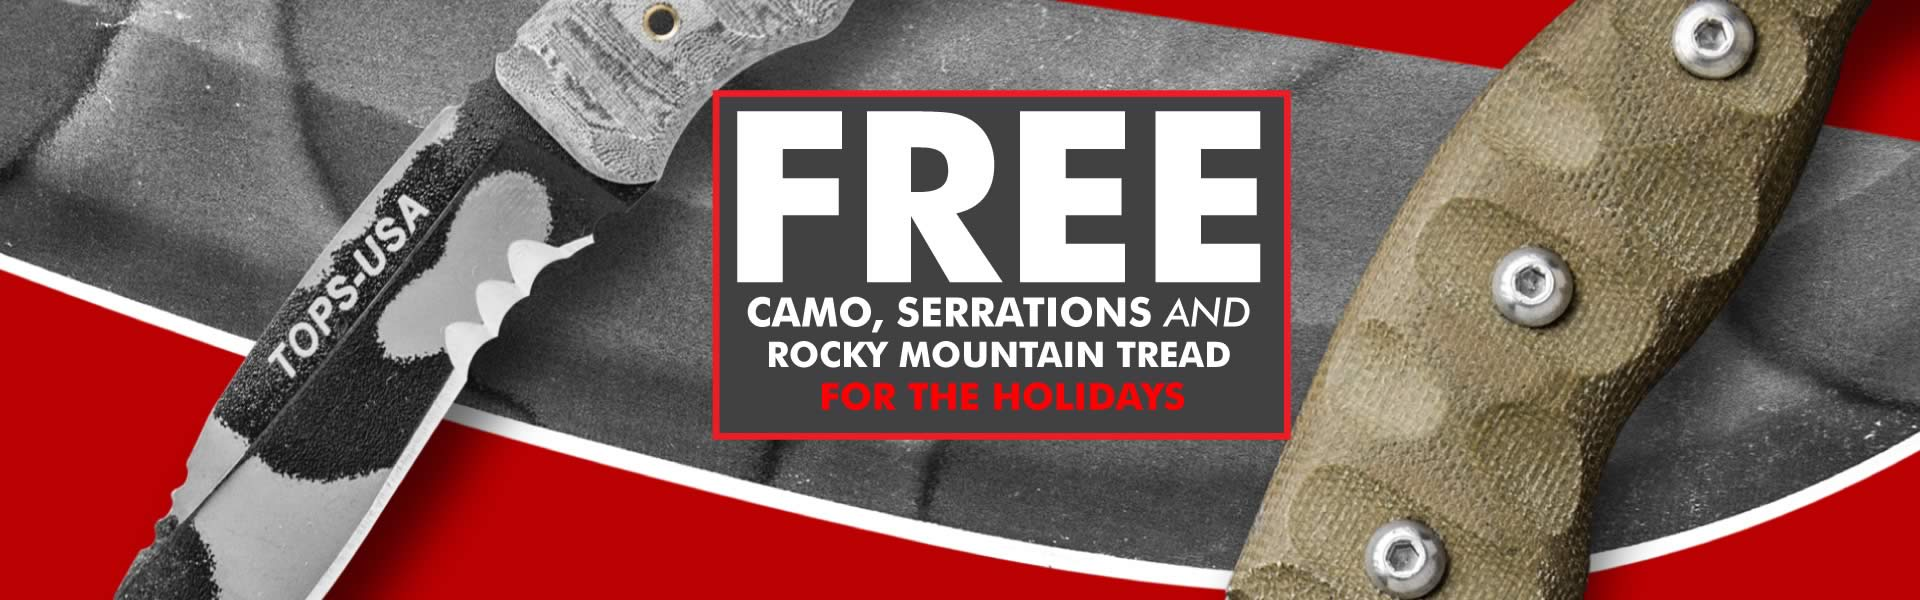 Free camo, serrations and rocky mountain tread